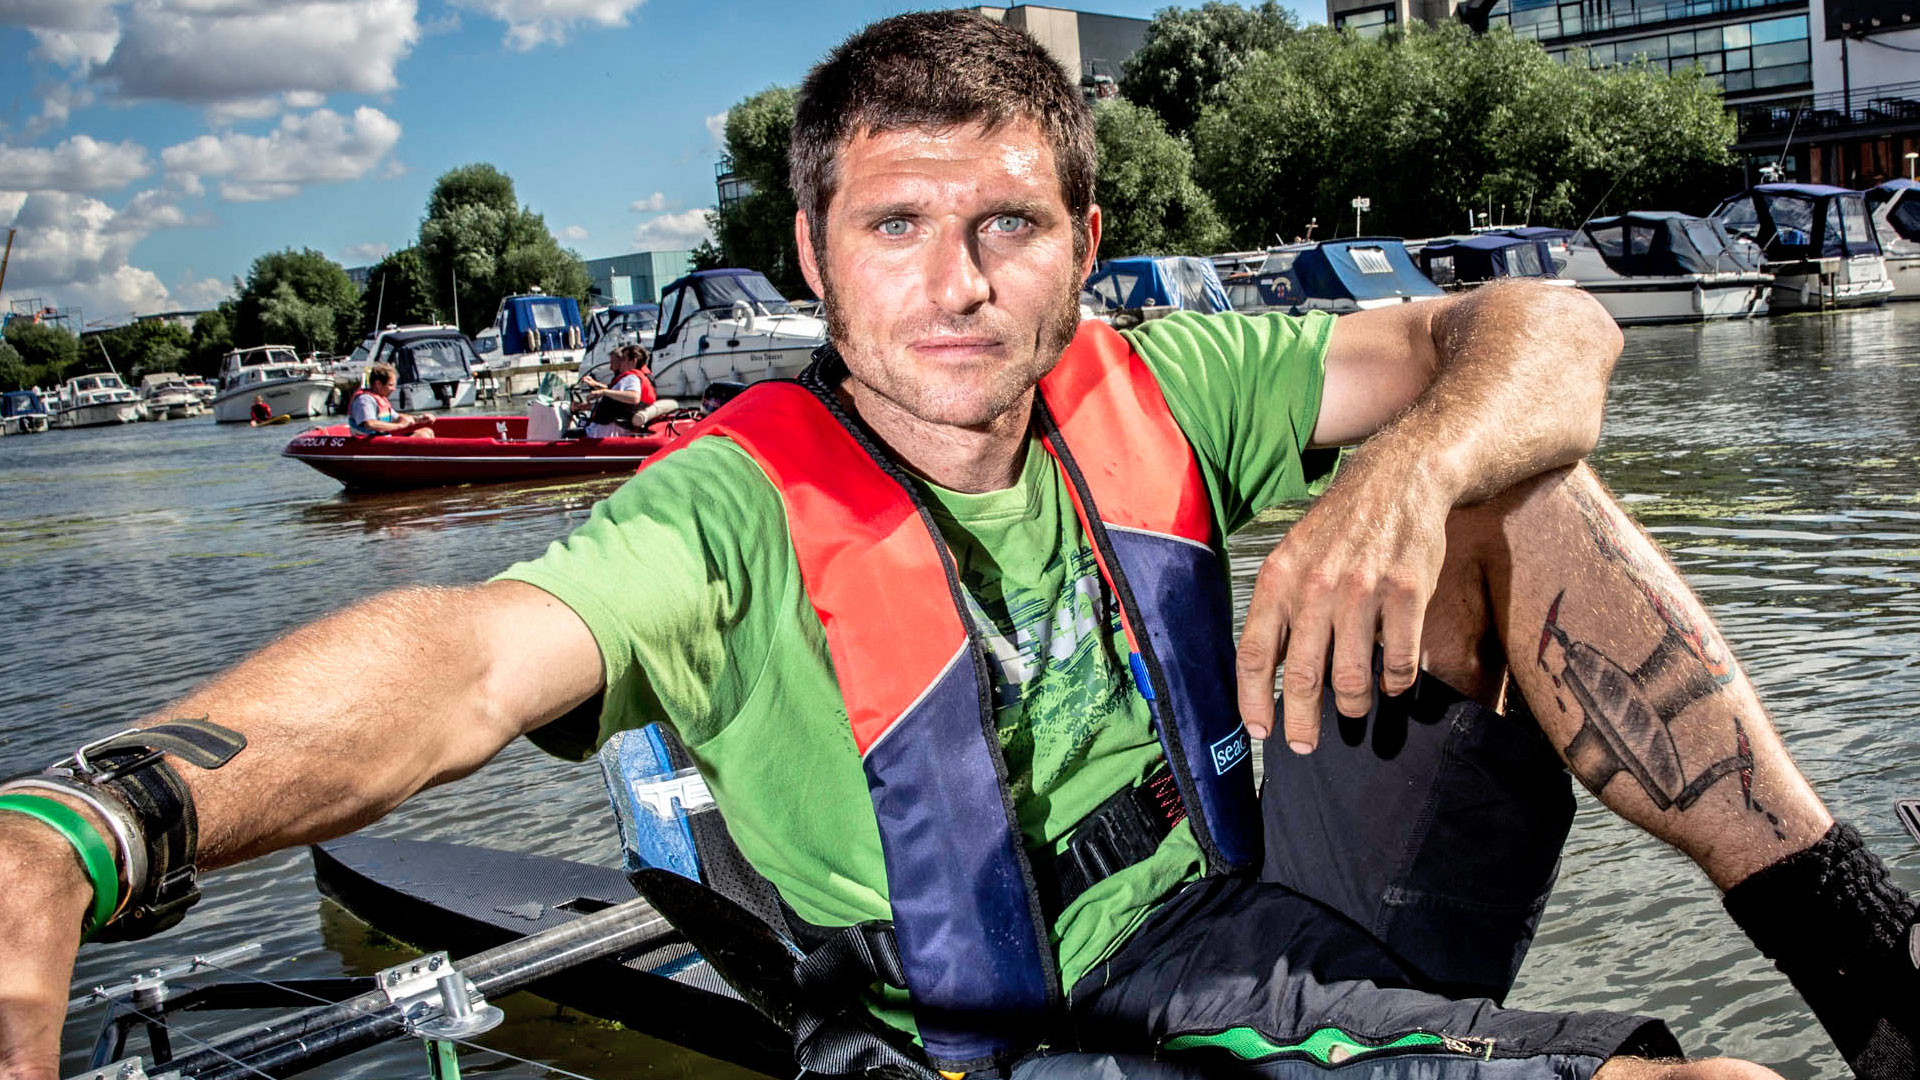 Series 3 Episode 3: World's Fastest Human-Powered Boat